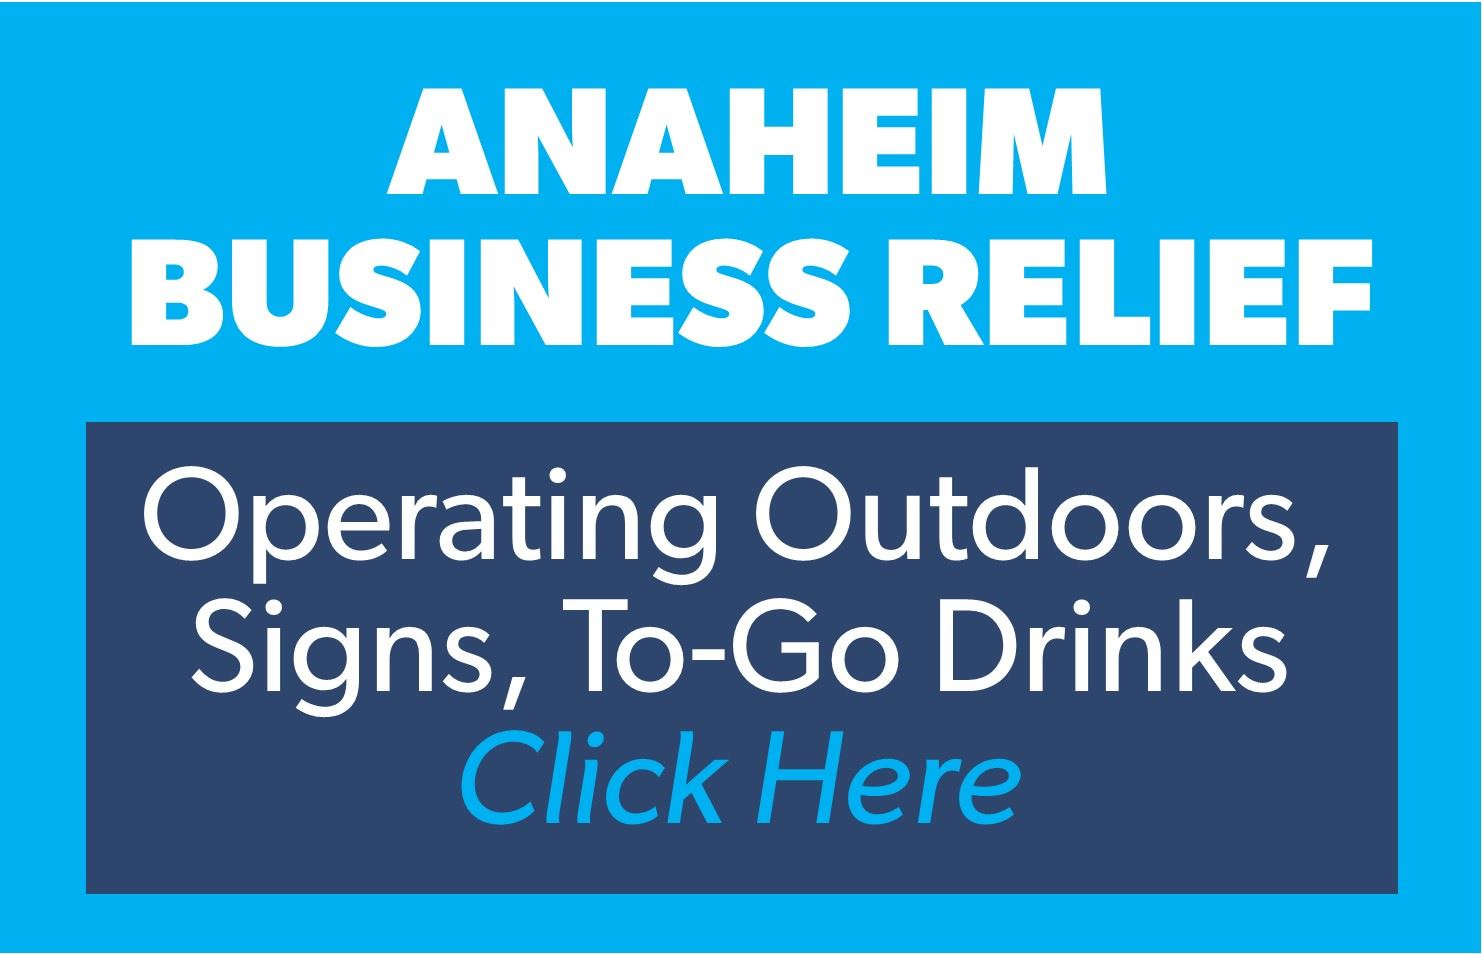 Anaheim business reflief Opens in new window